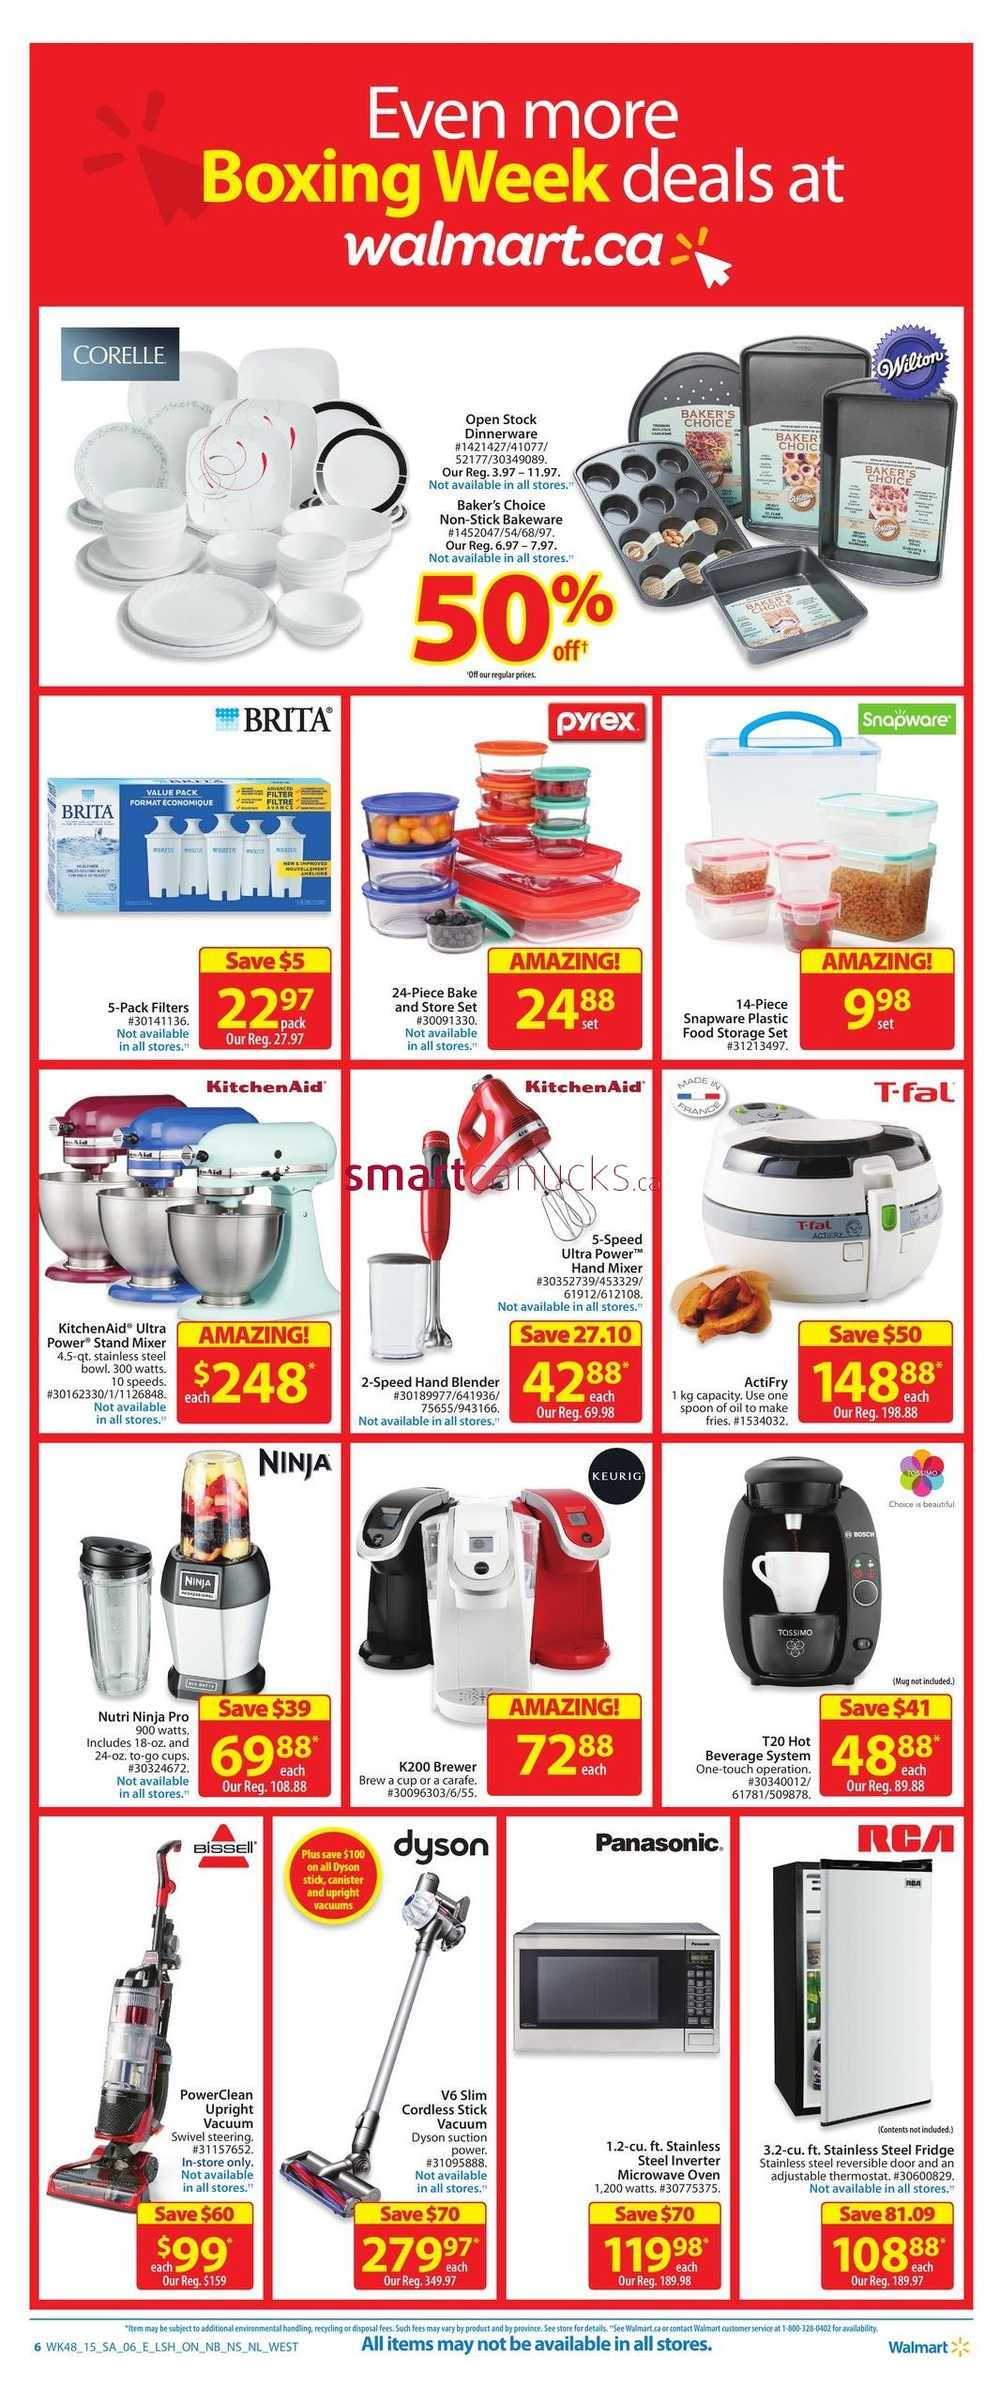 West boxing week flyer 2015 walmart canada flyers coupons amp sales